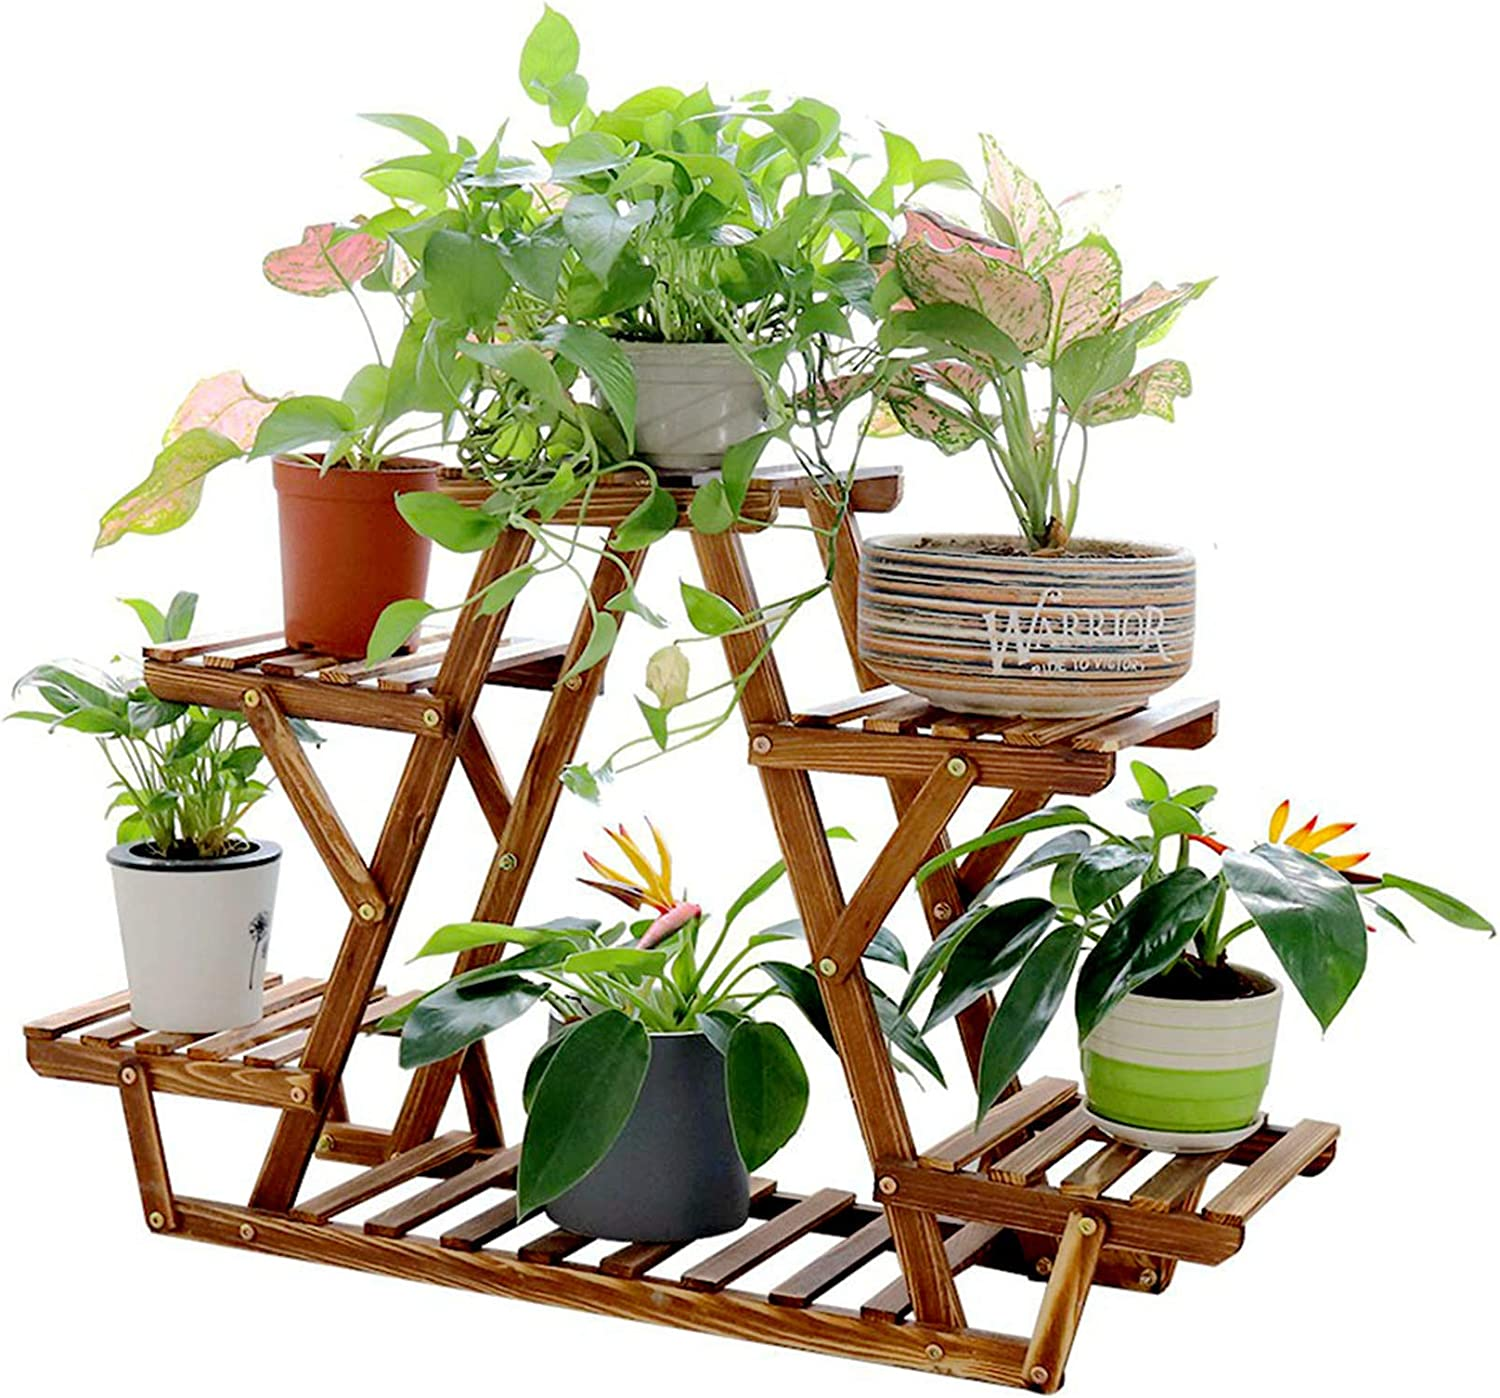 unho Triangular Plants Stand Shelf Indoor 6 Potted Wooden Flower Pot Stand Window Patio Rack Holder for Herbs Plants Succulents Flowers Decors